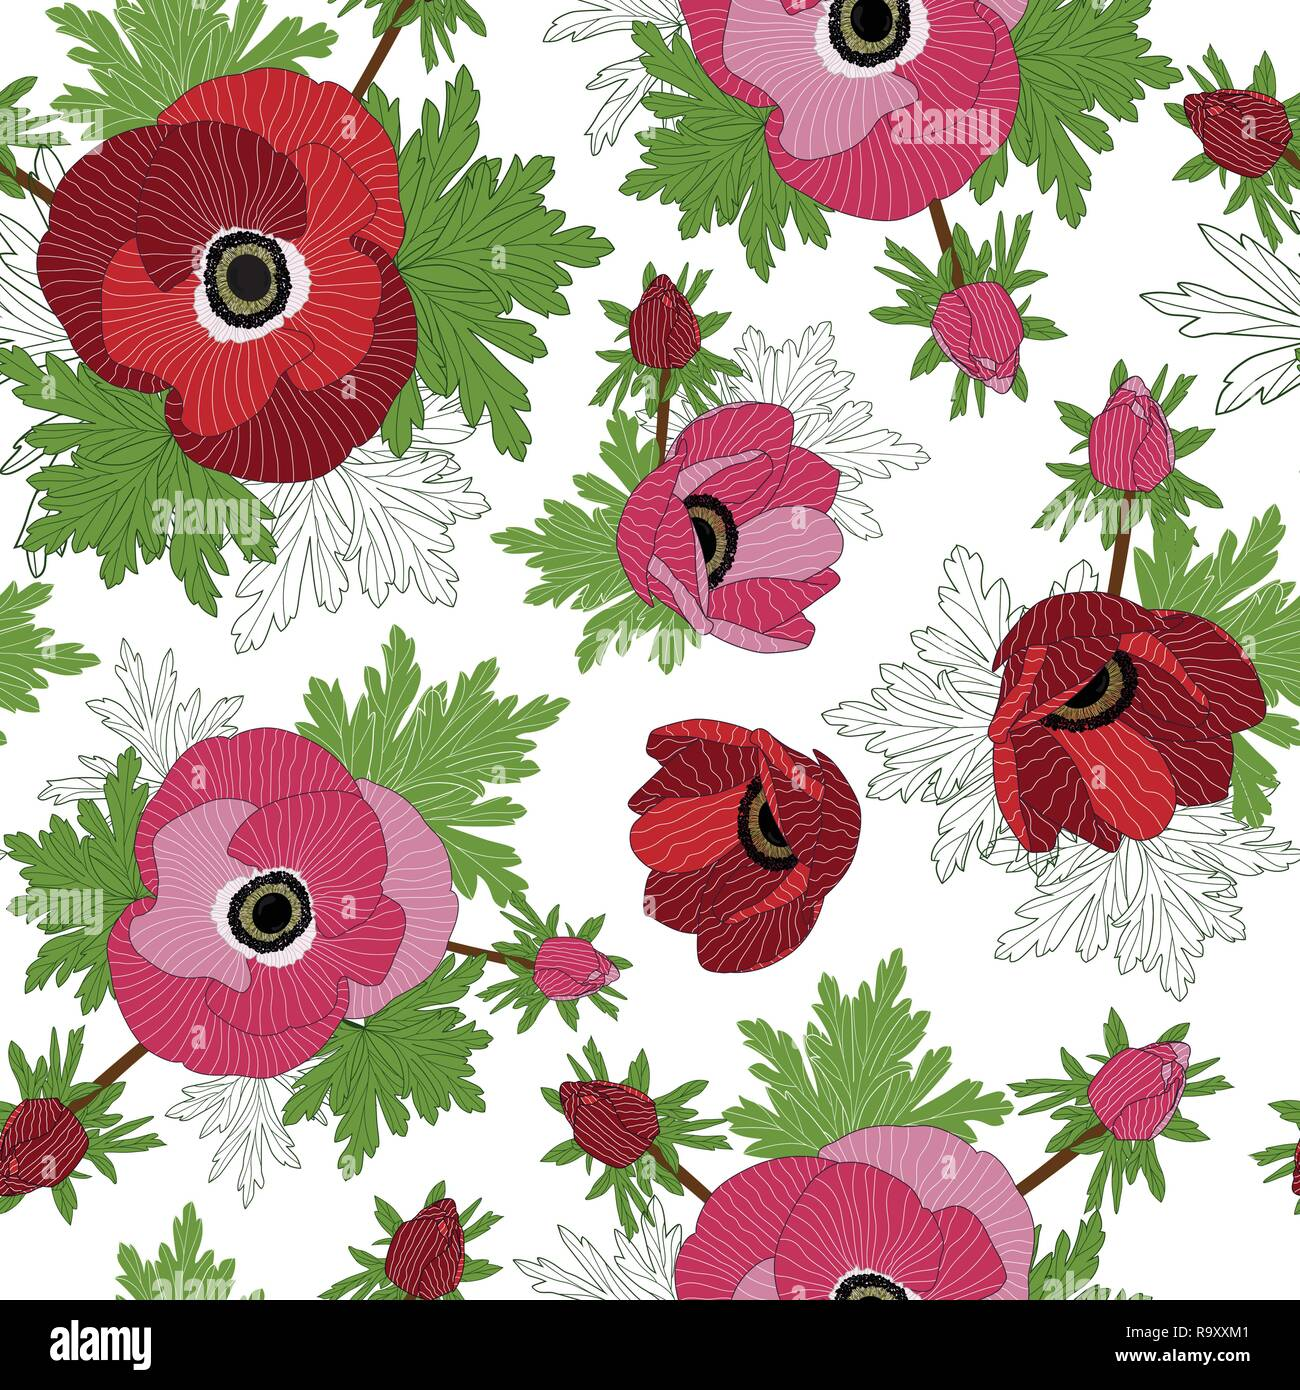 Vector floral repeat seamless pattern with red and pink anemone flowers. - Stock Vector